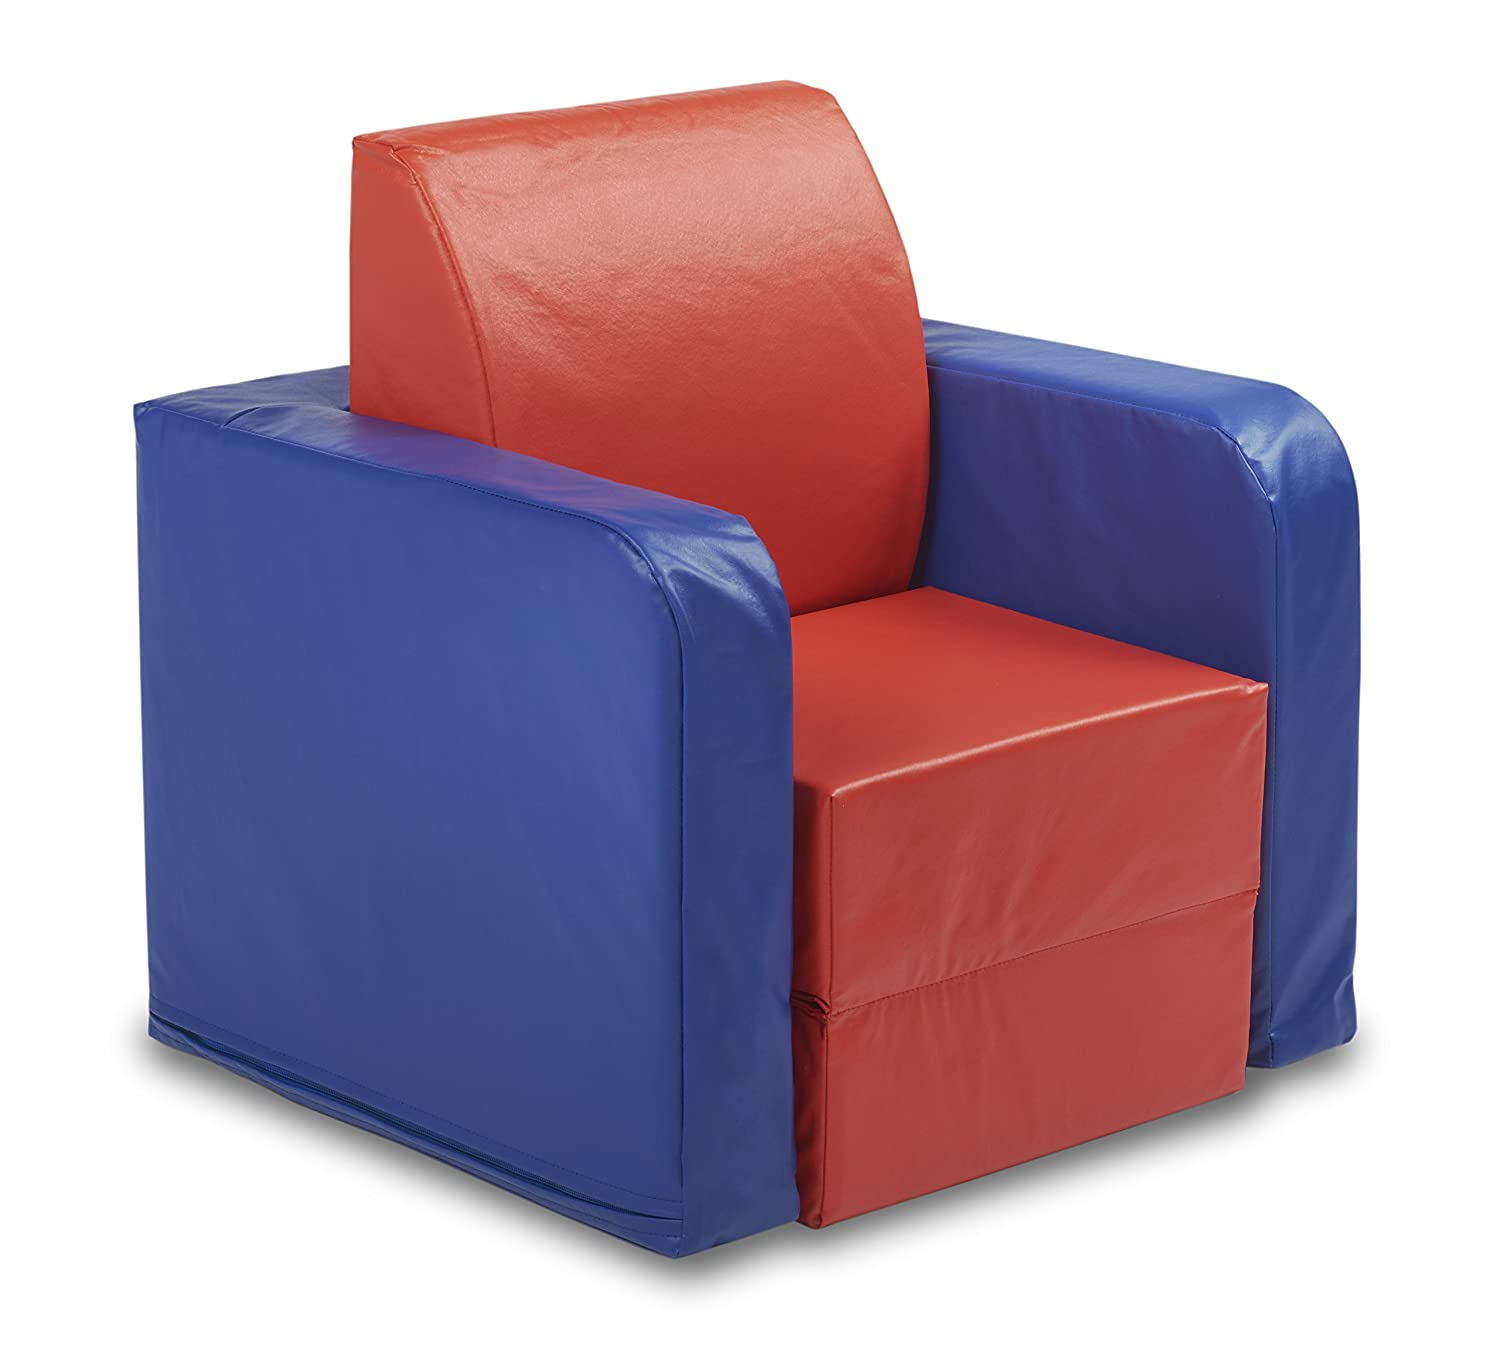 ECR4Kids SoftZone Convertible Kids Club Chair, Blue/Red